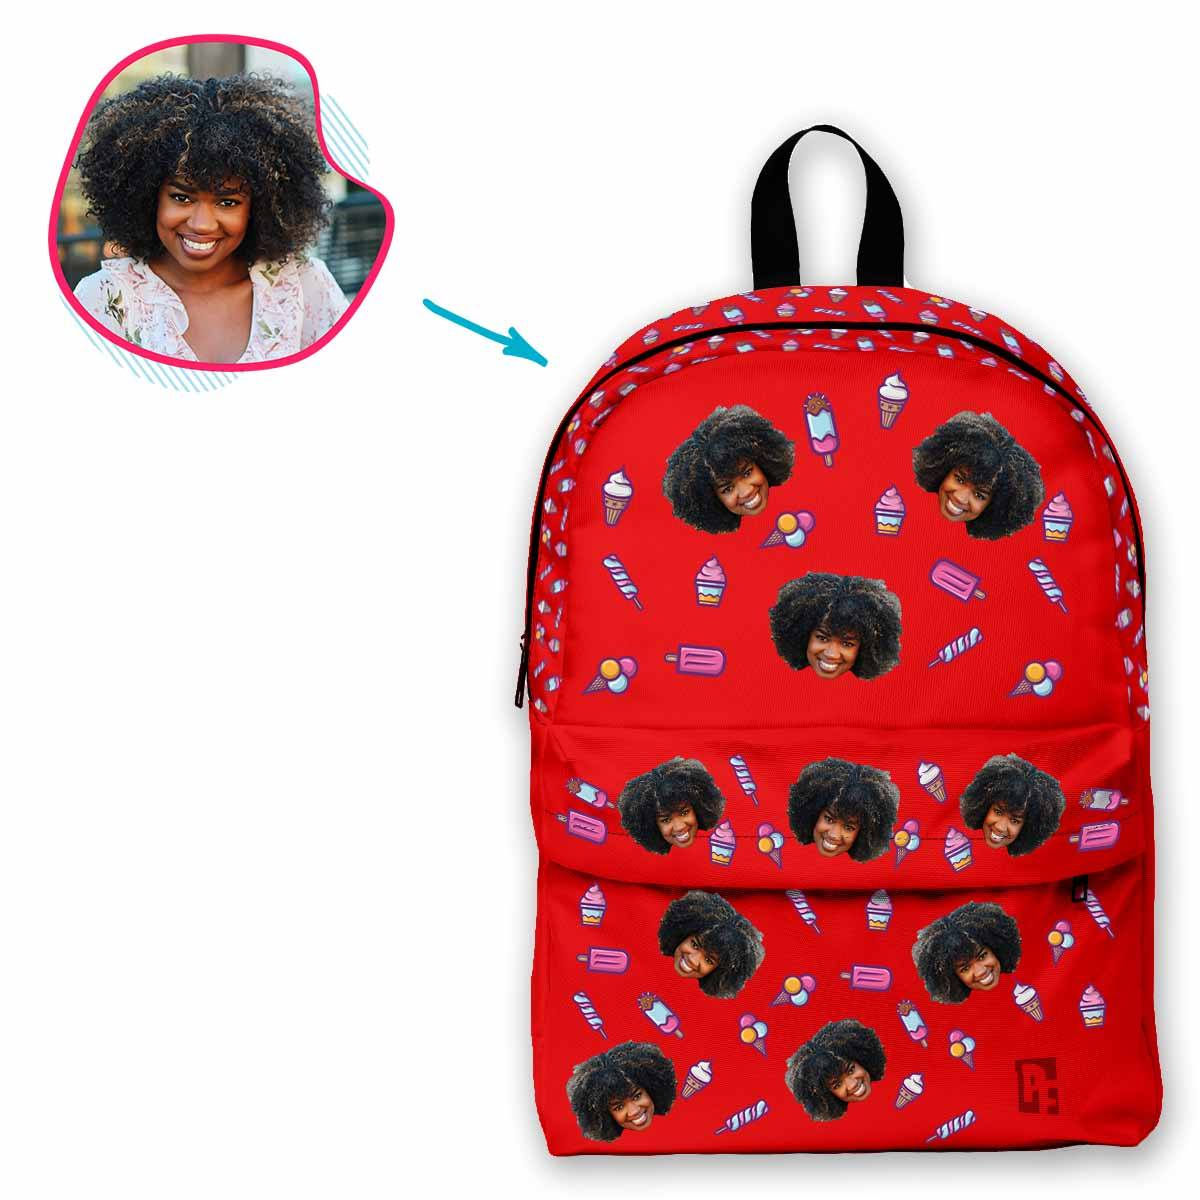 red Candies classic backpack personalized with photo of face printed on it